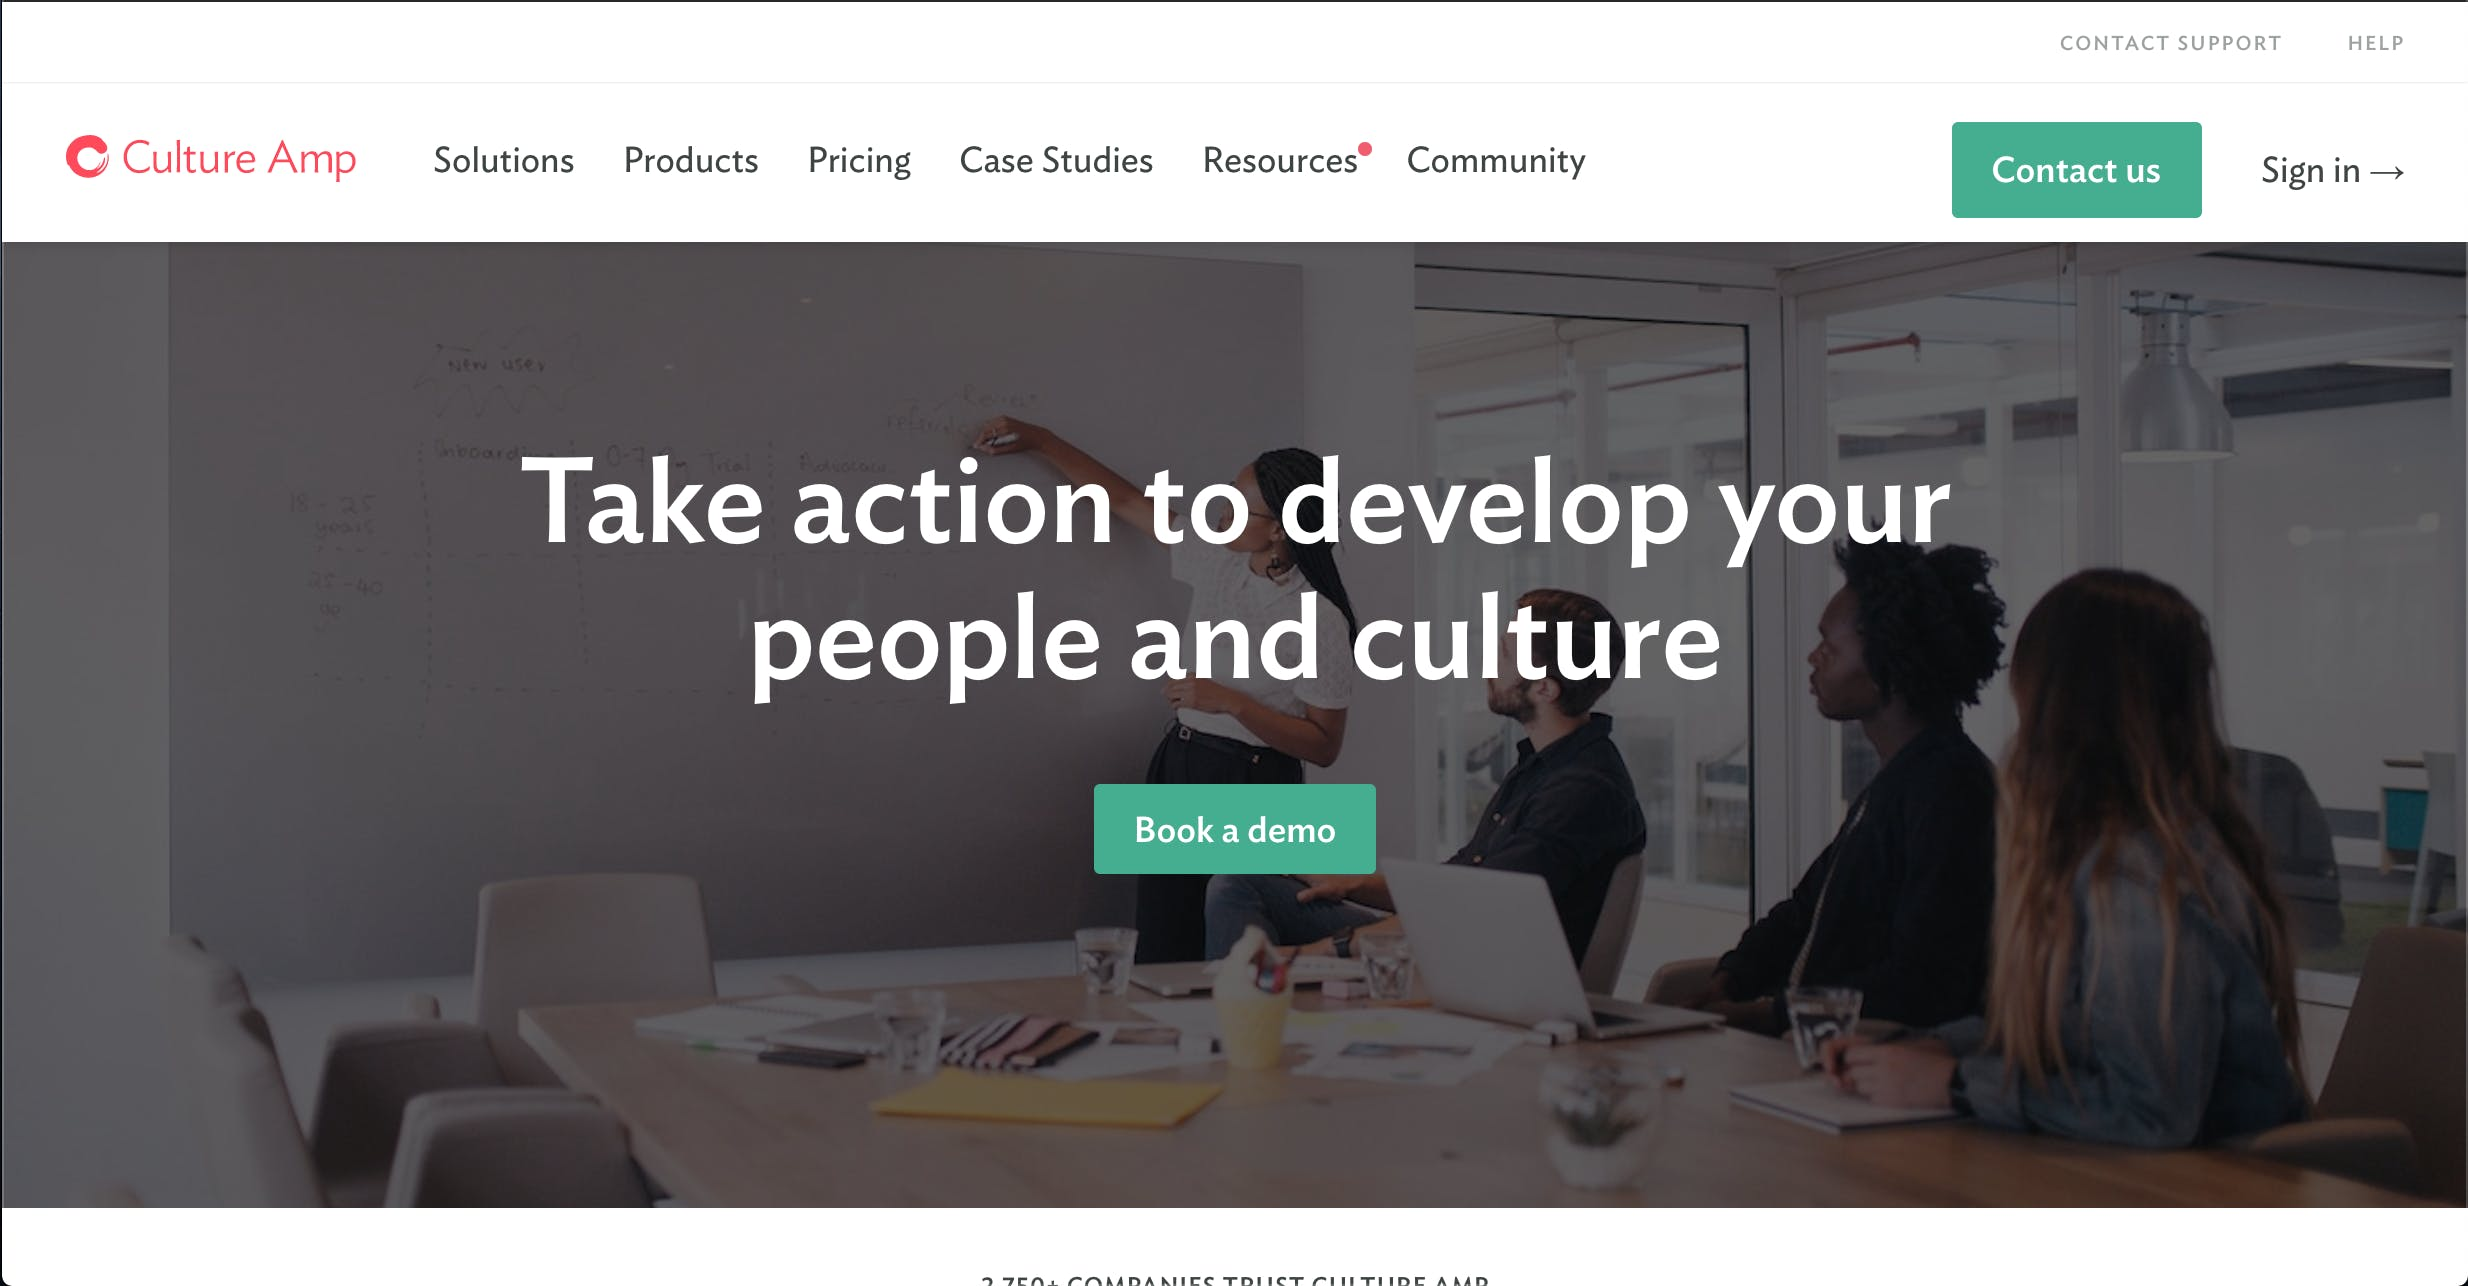 Culture Amp's homepage for employee engagement surveys